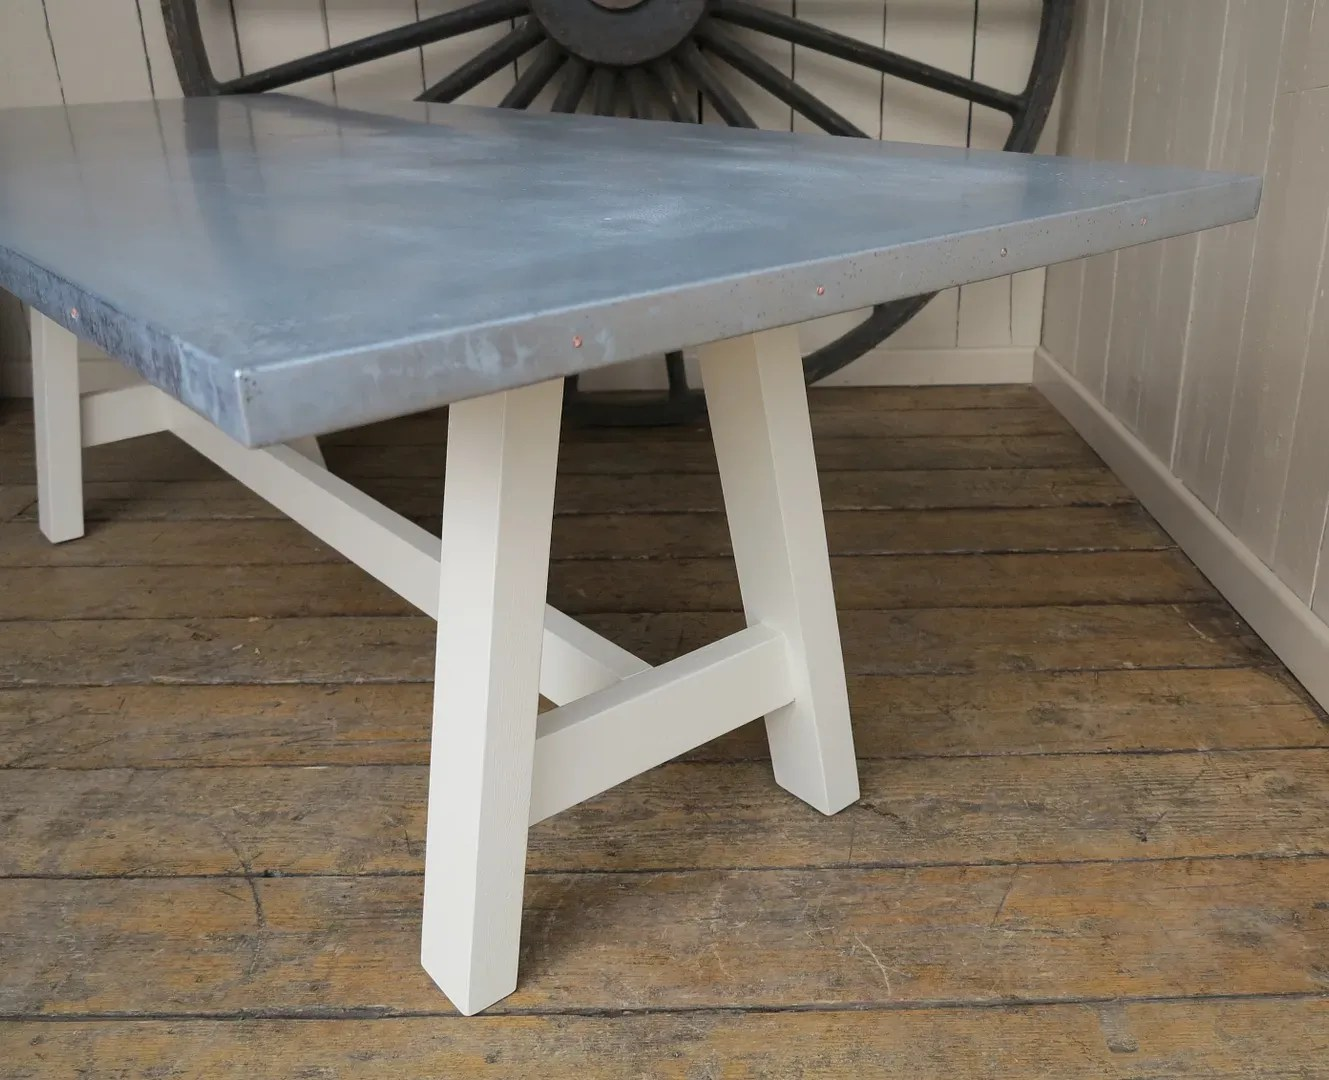 zinc kitchen table ikea doors bespoke distressed top or dining tables are made to order at ukaa